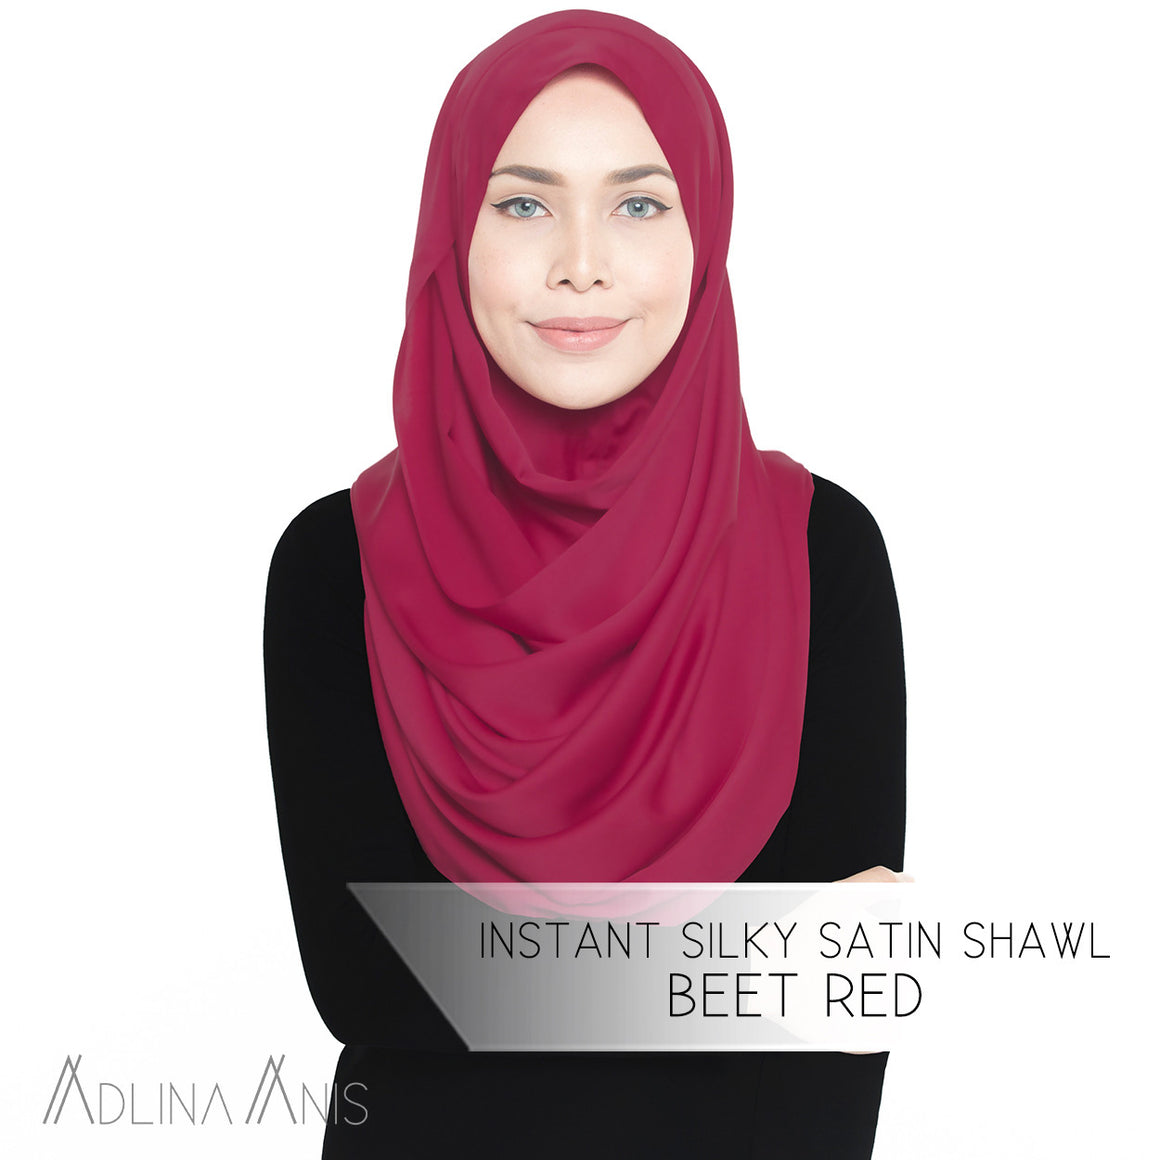 Instant Silky Satin Shawl - Beet Red